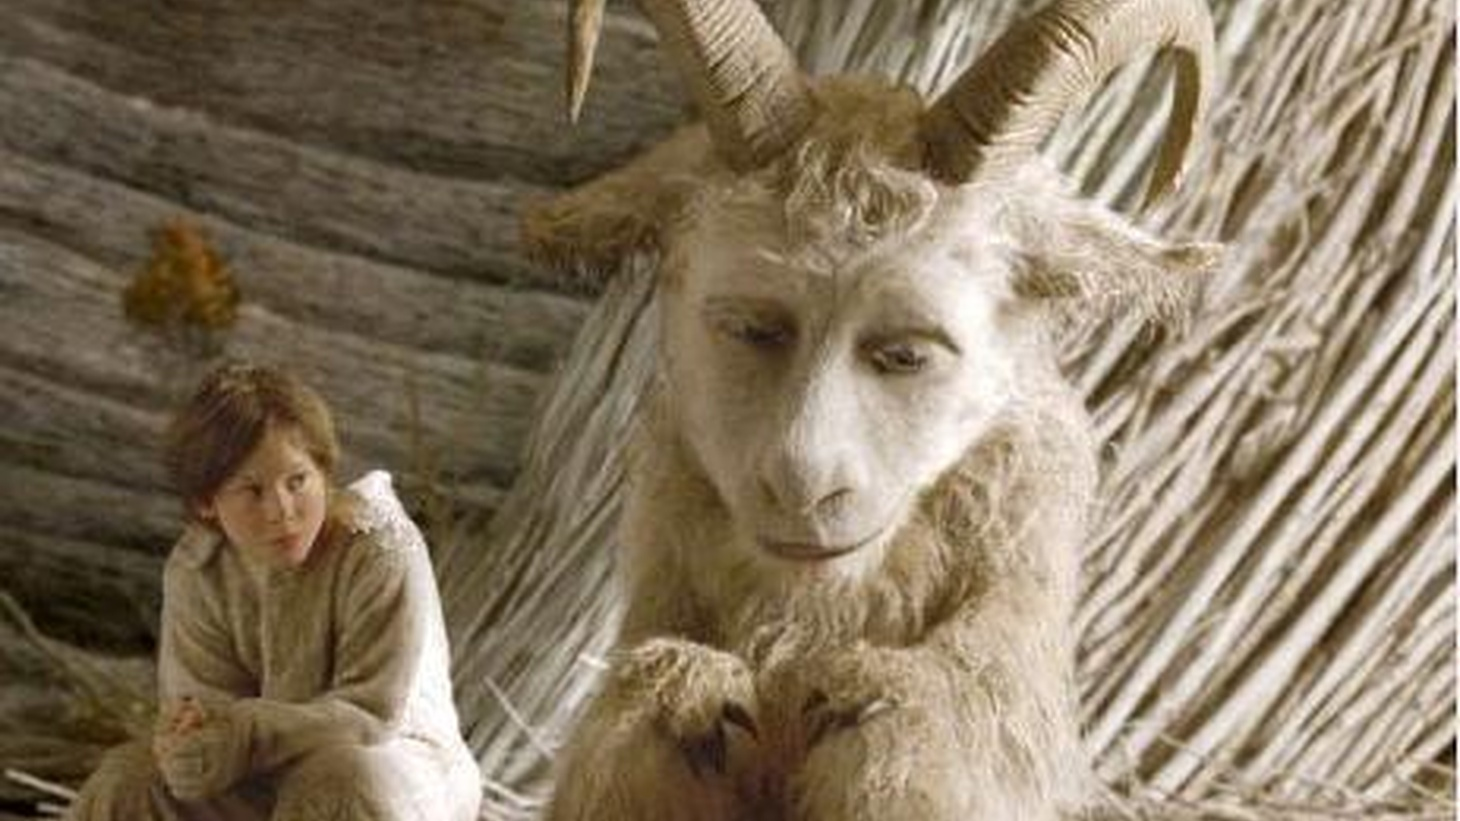 The movie version of Where the Wild Things Are honors the book in every imaginable way...and in ways no one could have imagined until Spike Jonze and his crew came long...